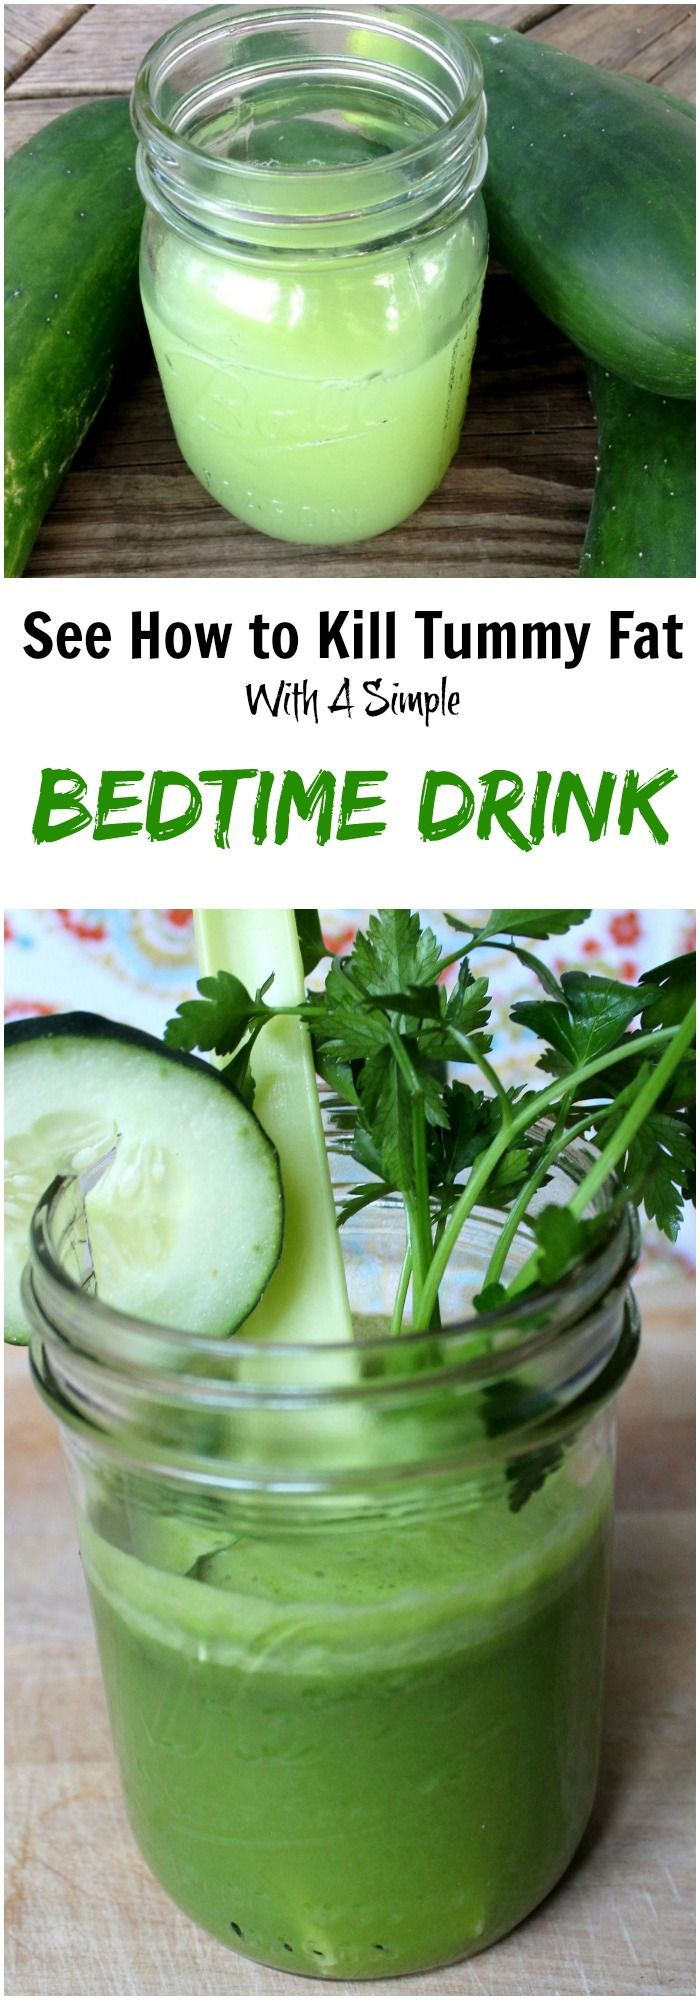 Here are the ingredients you need for this bedtime drink.  1 cucumber A bunch of parsley 1tsp. grated ginger ½ lemon 1/3 cup water The instructions are really simple. You just combine all the ingredients in a juicer and process it well.  Is everything set? – Awesome!  Now you have to drink this on a regular basis before going to bed.  Your tummy fat will disappear.